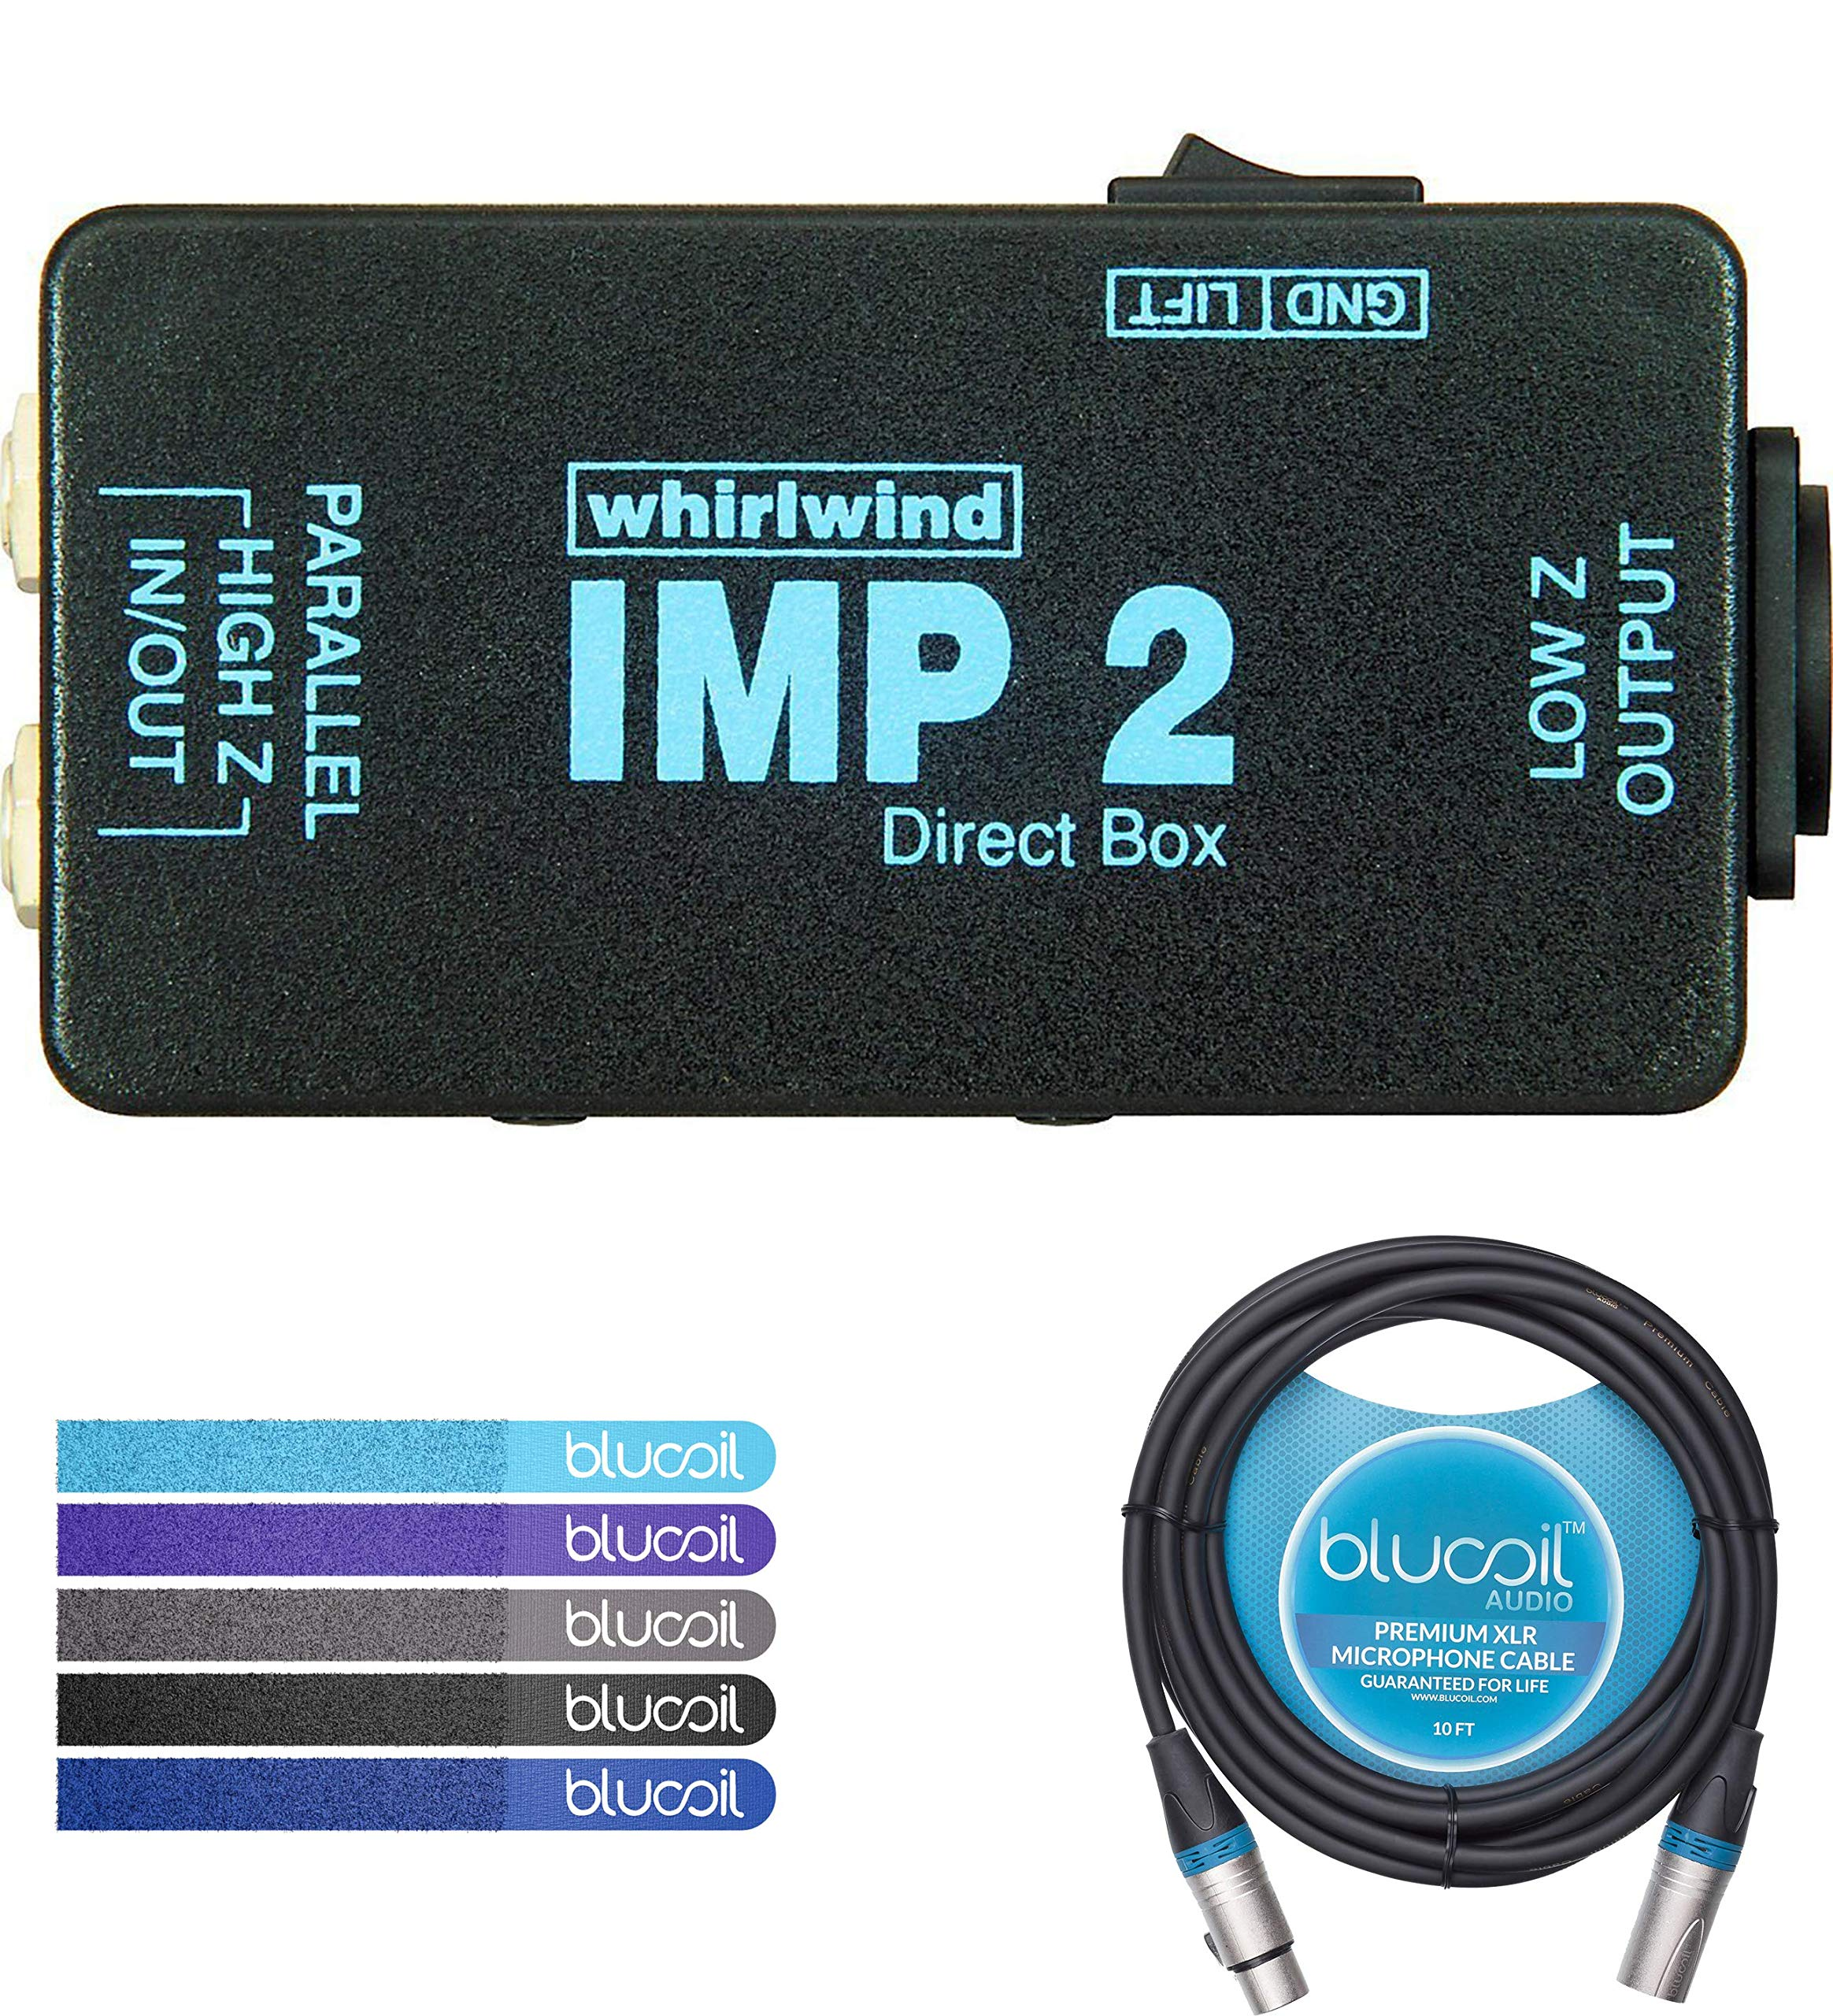 Whirlwind IMP 2 Passive Direct Box with 1-Channel Bundle with Blucoil Audio 10ft Balanced XLR Cable and 5 Pack of Reusable Cable Ties